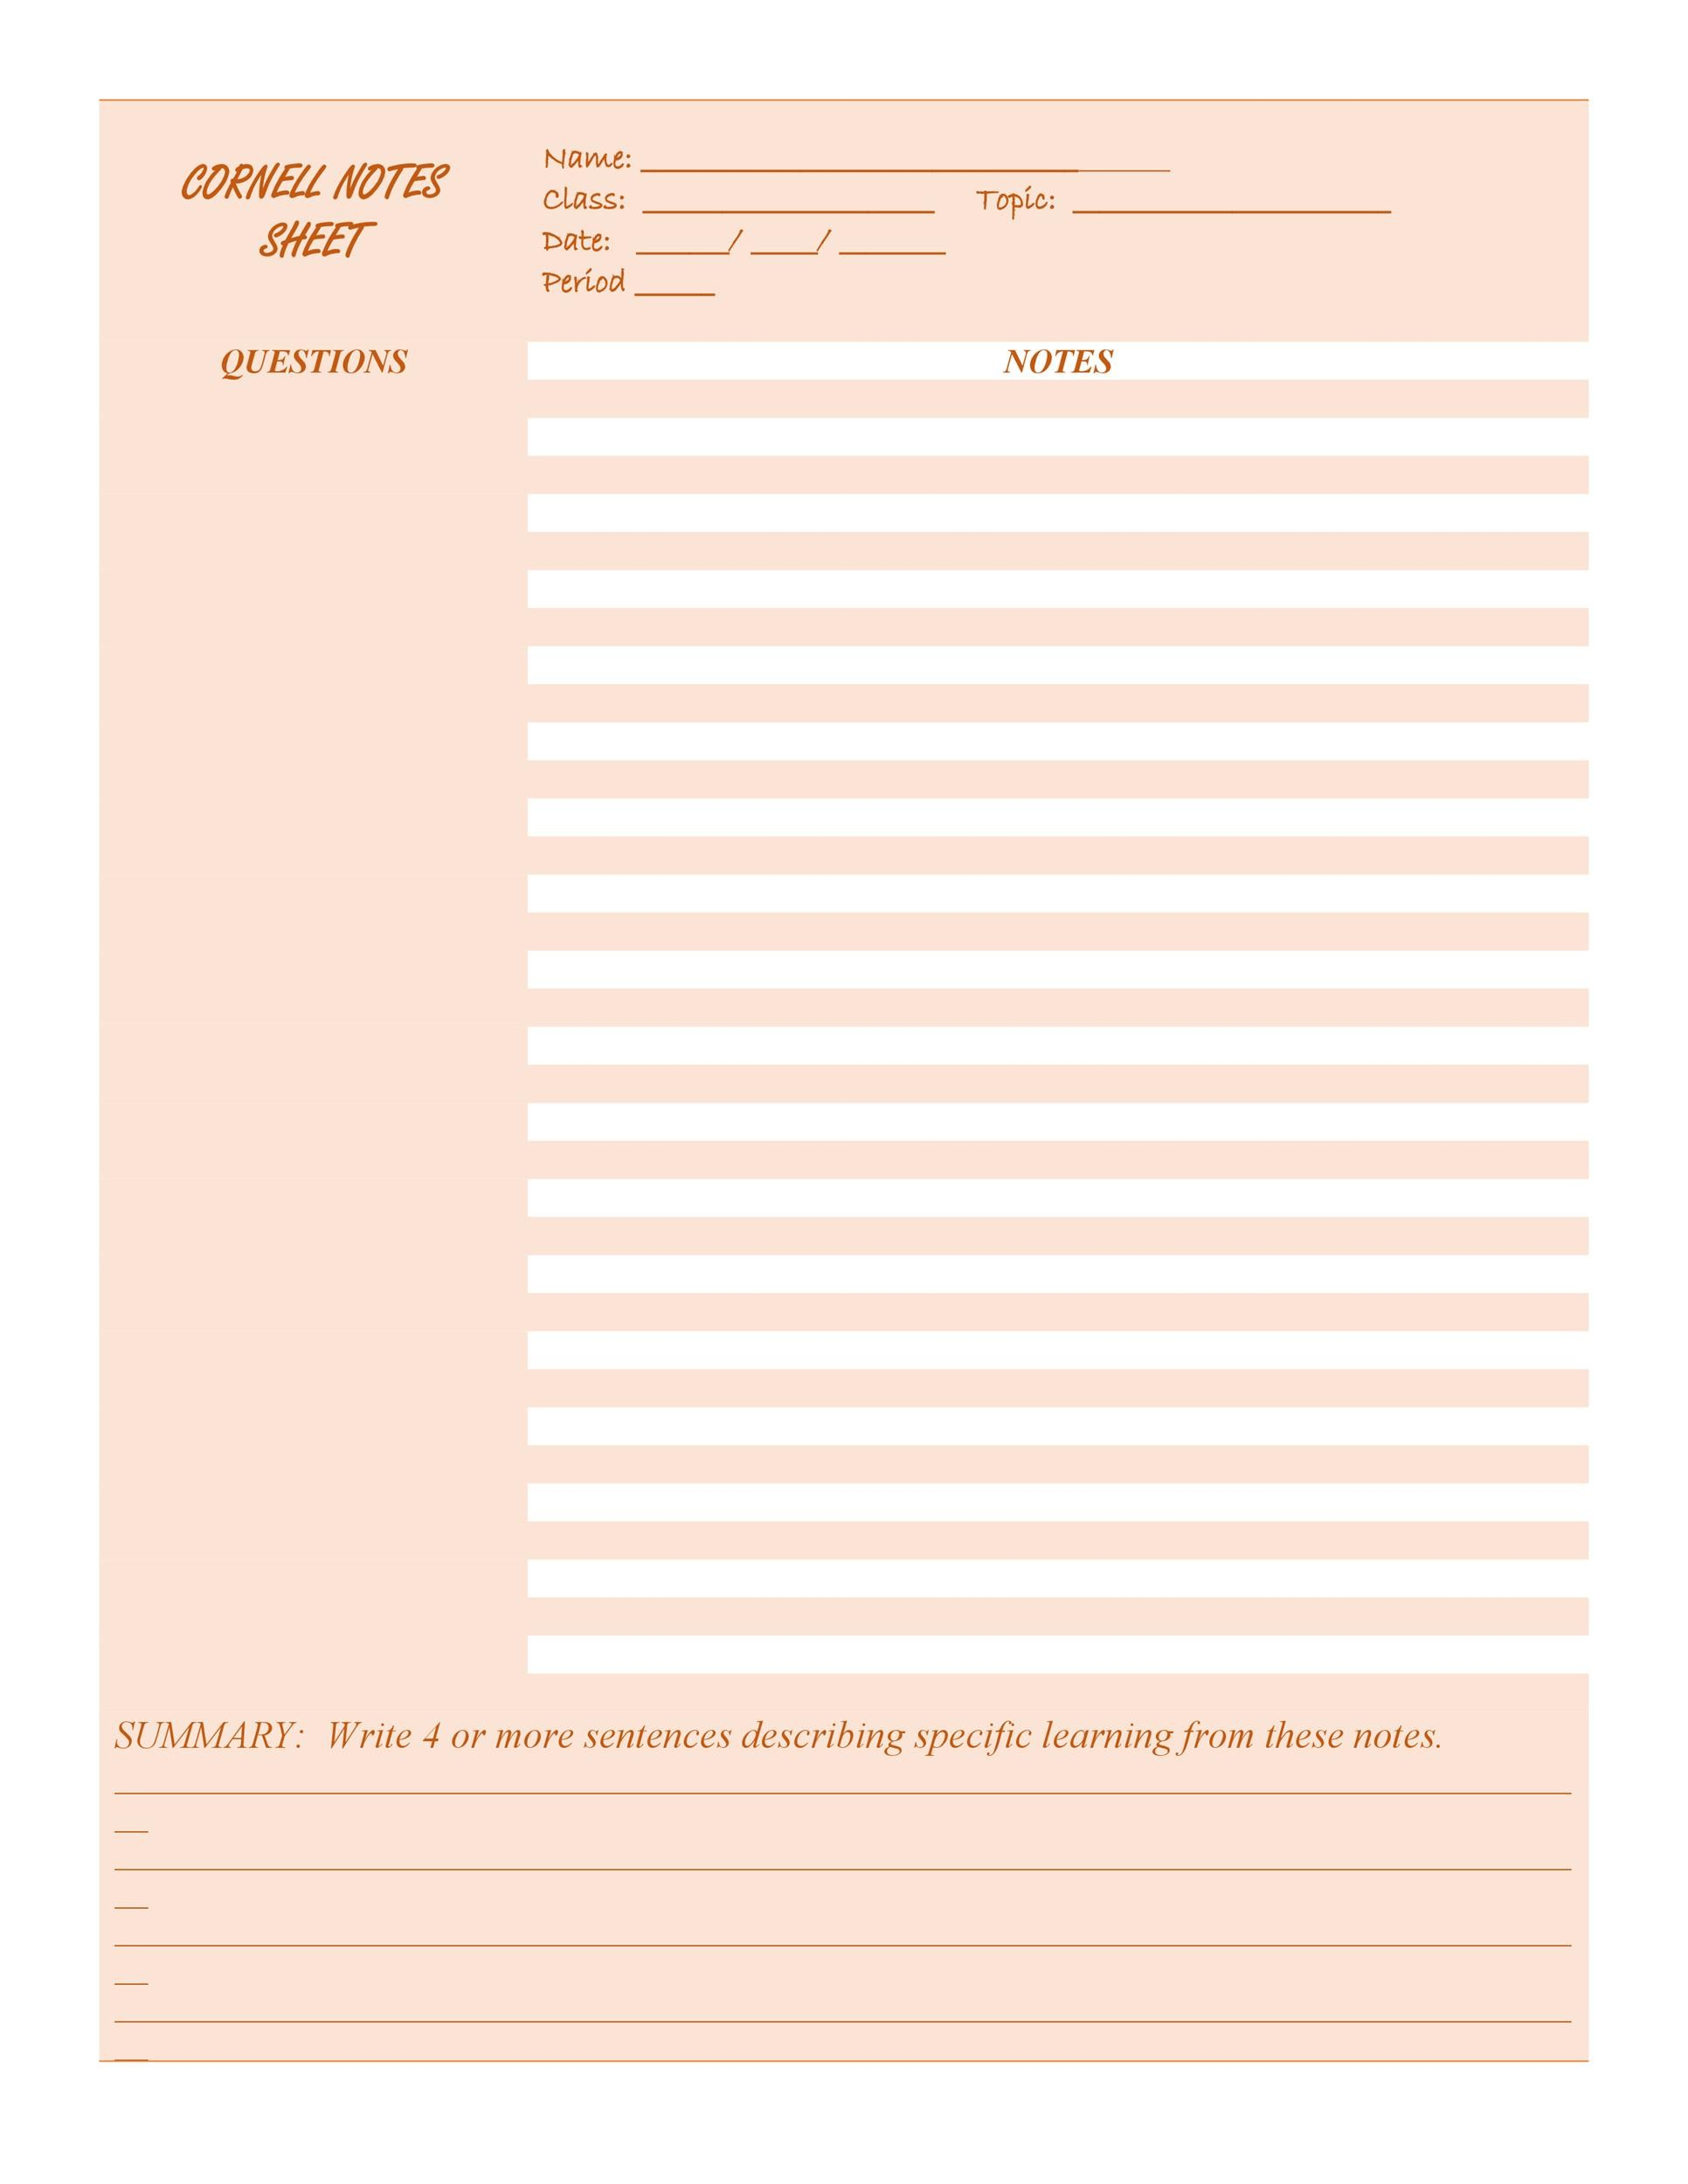 36 Cornell Notes Templates  Examples Word, PDF - Template Lab - note paper template